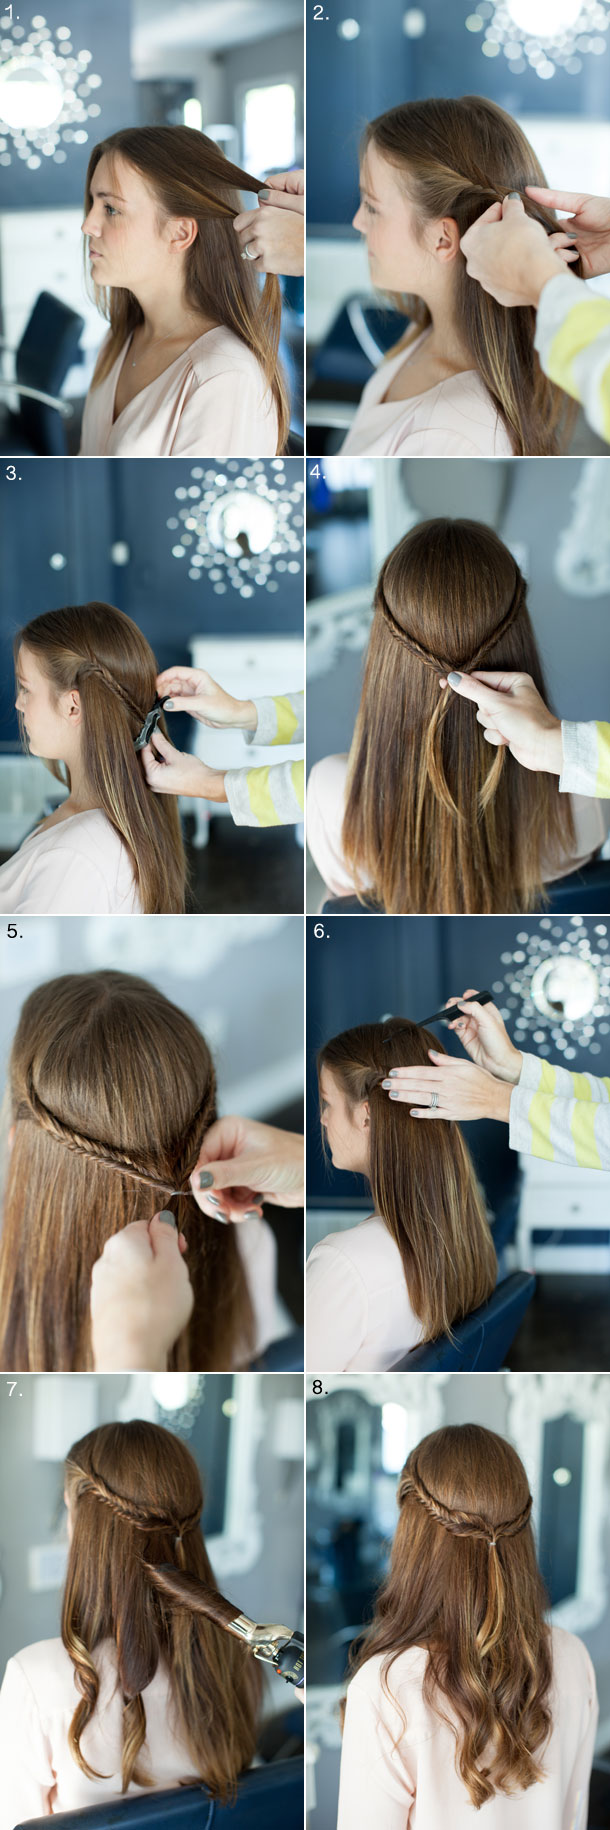 Fishtail Half-Updo tutorial by Martha Lynn Kale | photos by Kate Stafford for Camille Styles